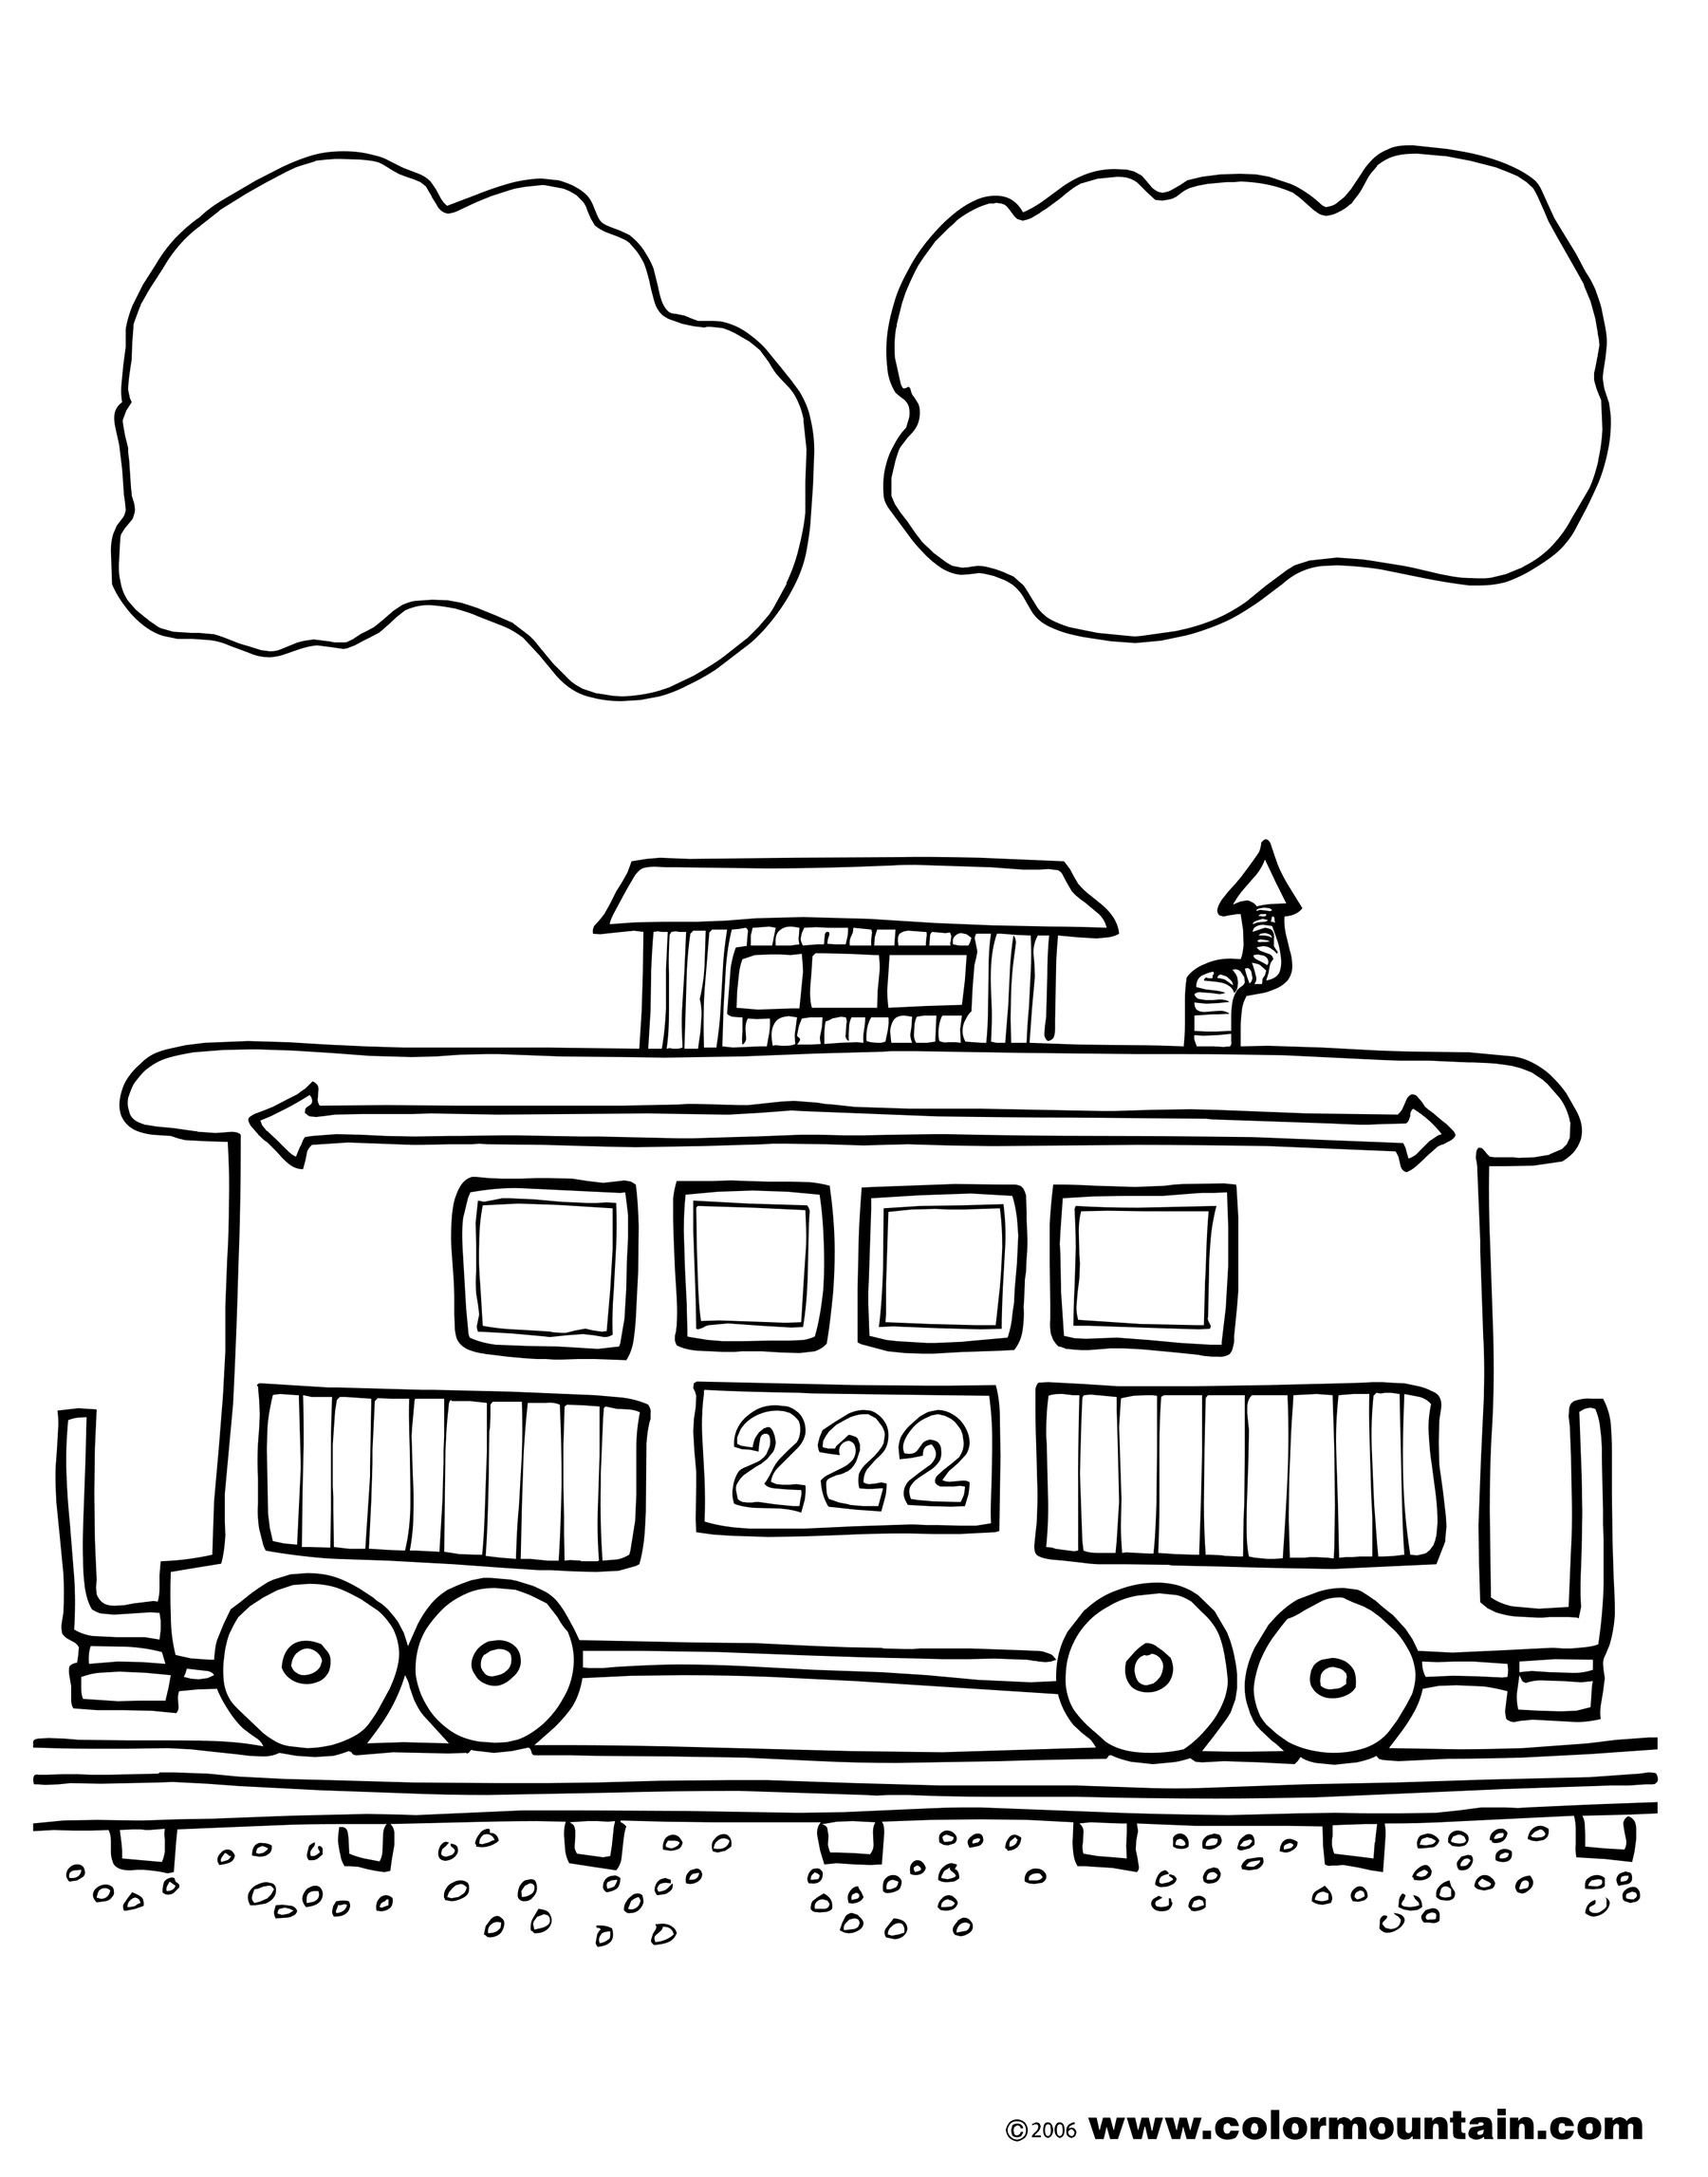 Free Coloring Pages Of Train Caboose Jpg 1 800 2 294 Pixels